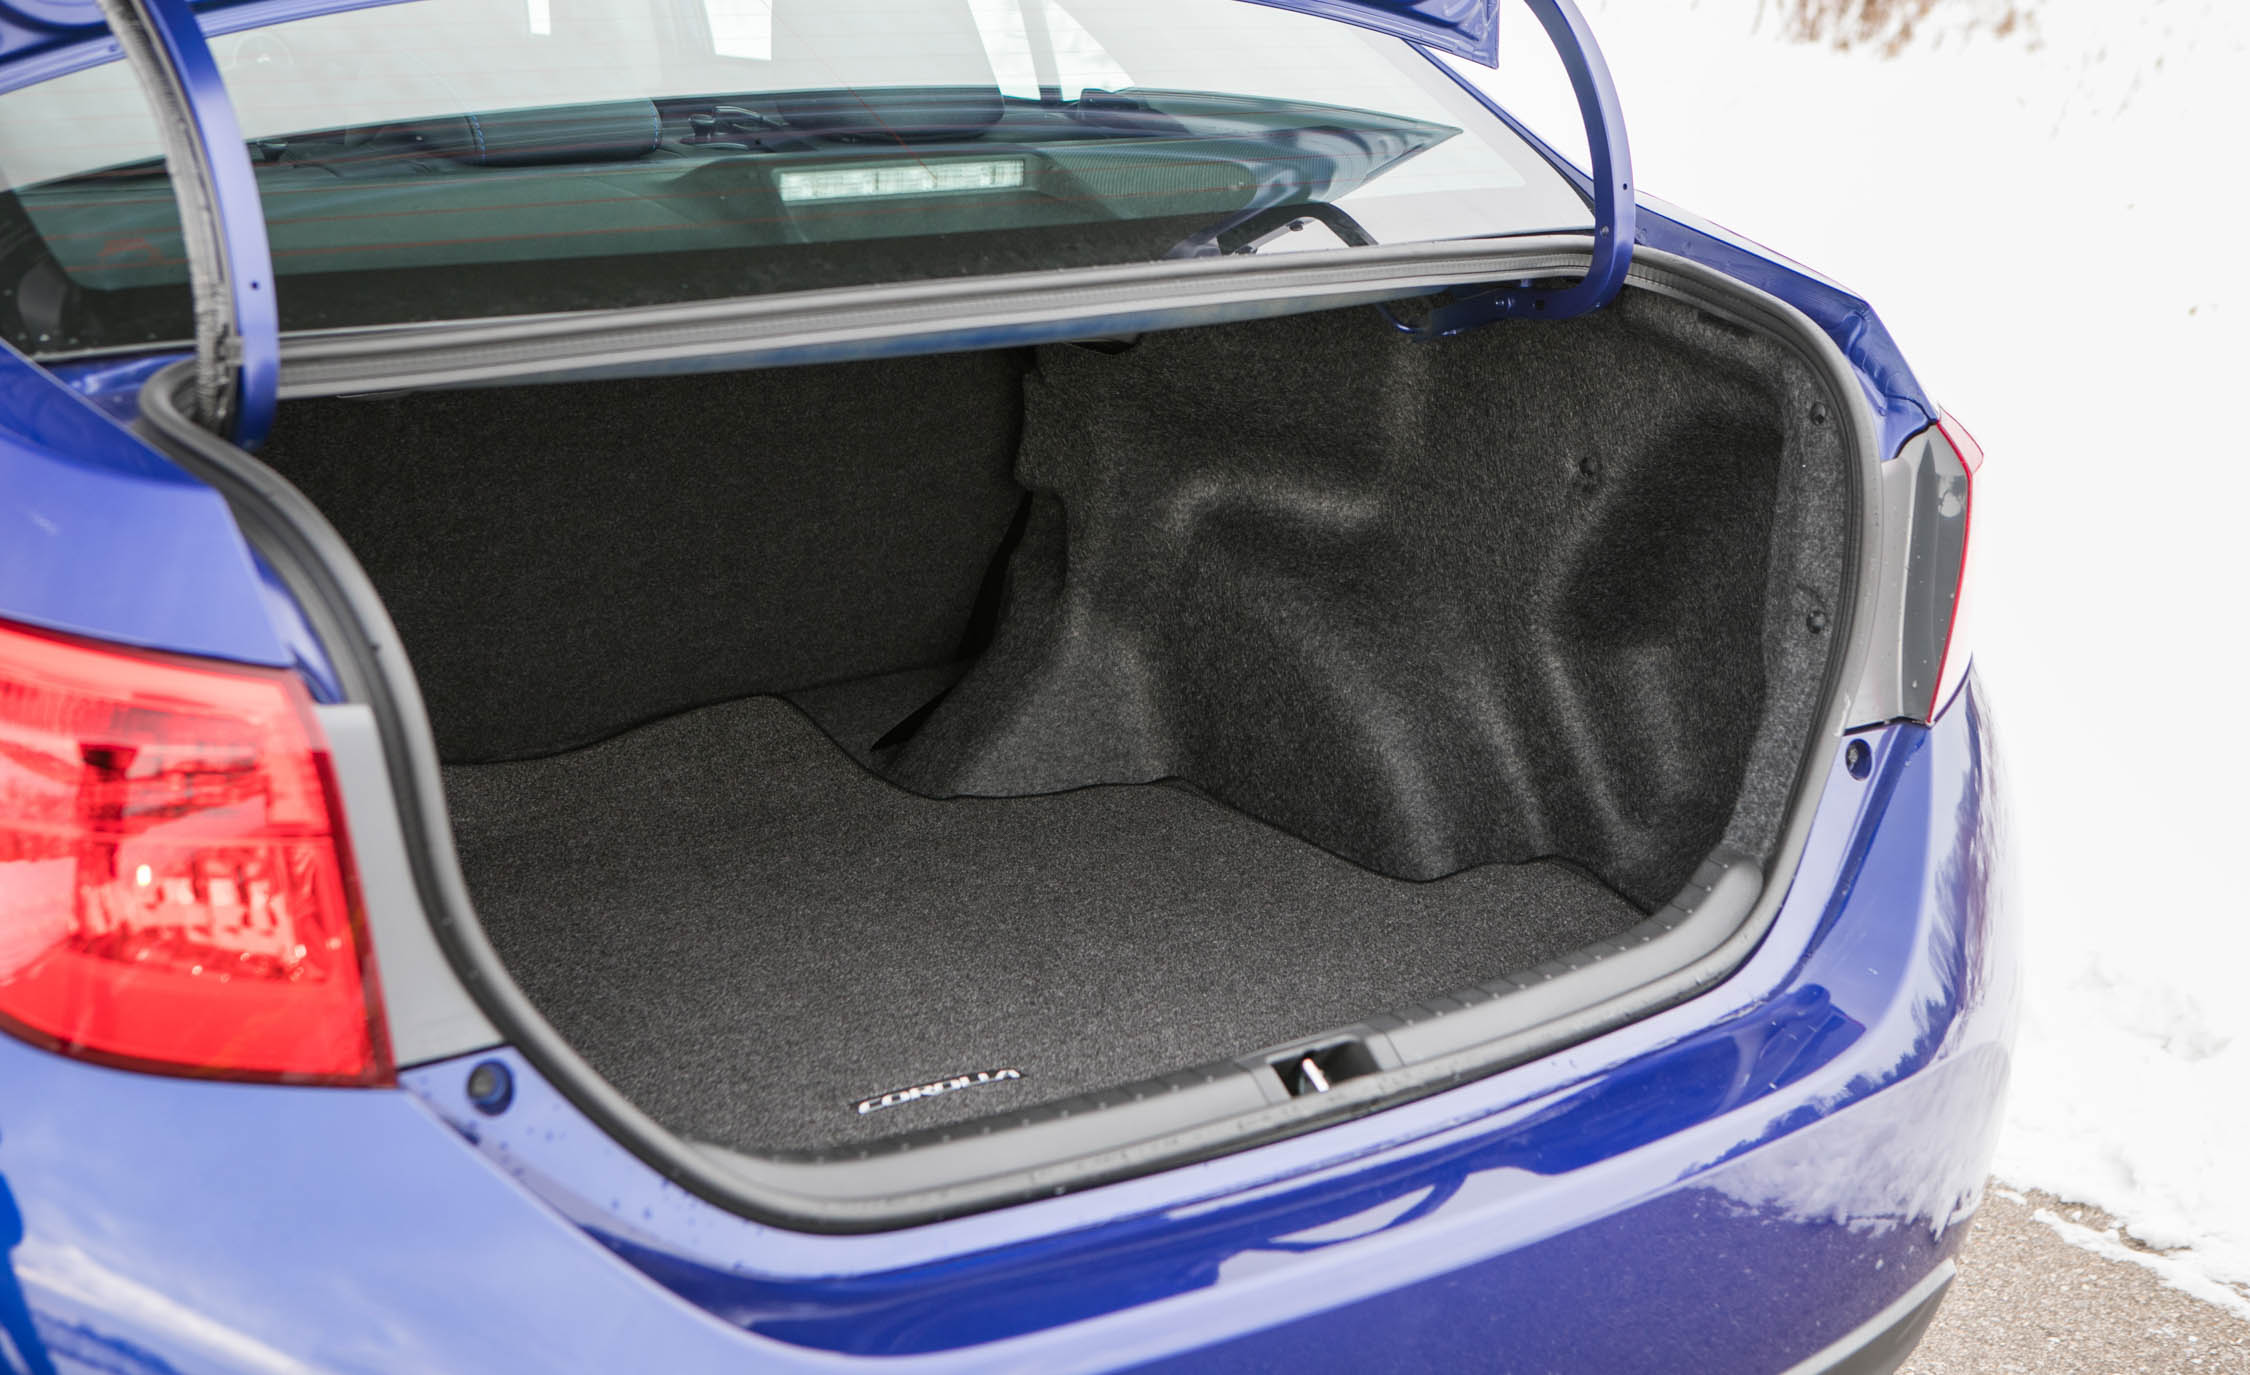 2017 Toyota Corolla XSE Interior View Cargo Trunk (View 45 of 75)